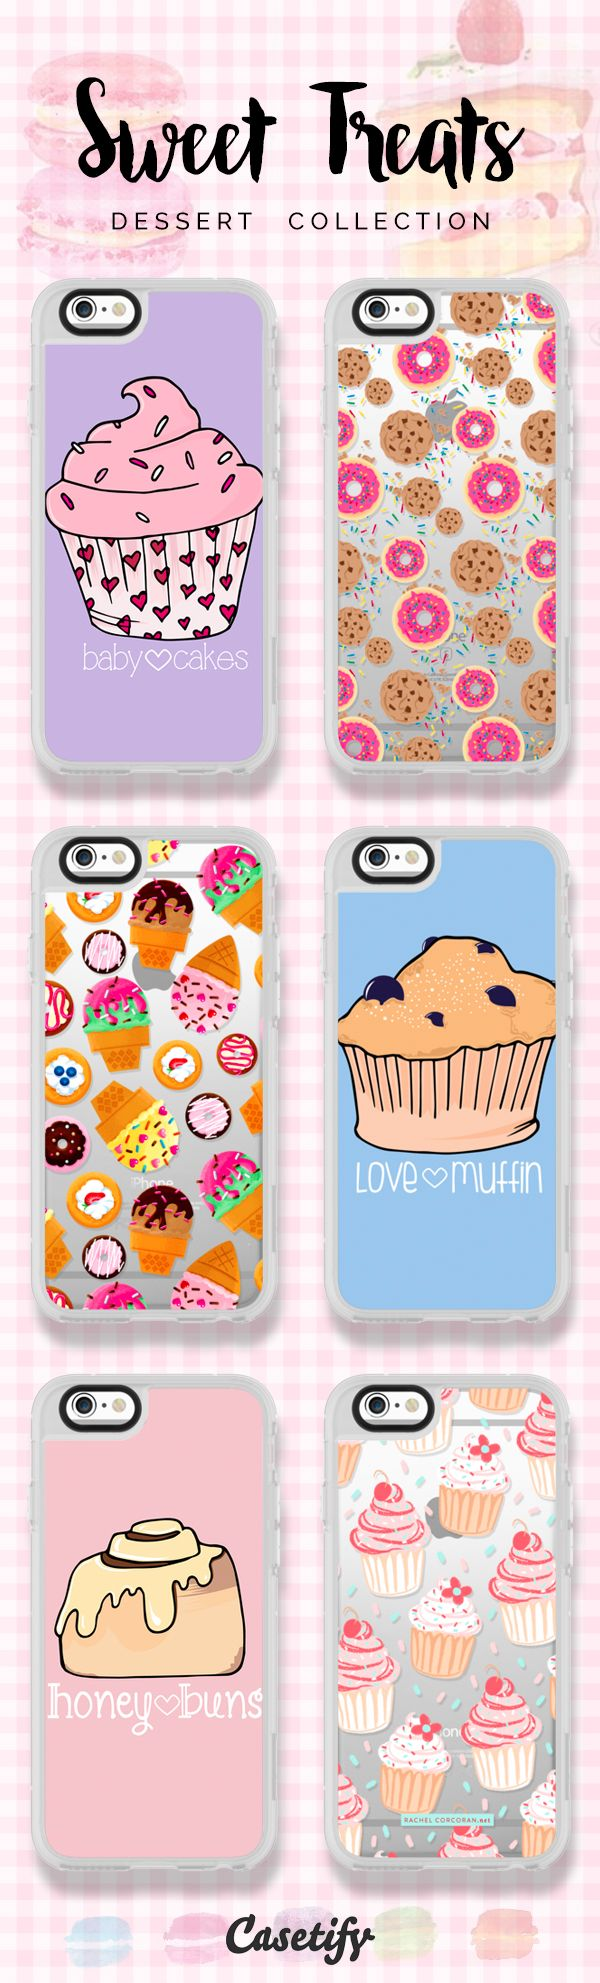 6 most popular sweet treat iPhone 6s phone cases | Click through to see more dessert iPhone 6 phone case ideas >>> https://www.casetify.com/artworks/QFCrwZcygm #food | @casetify